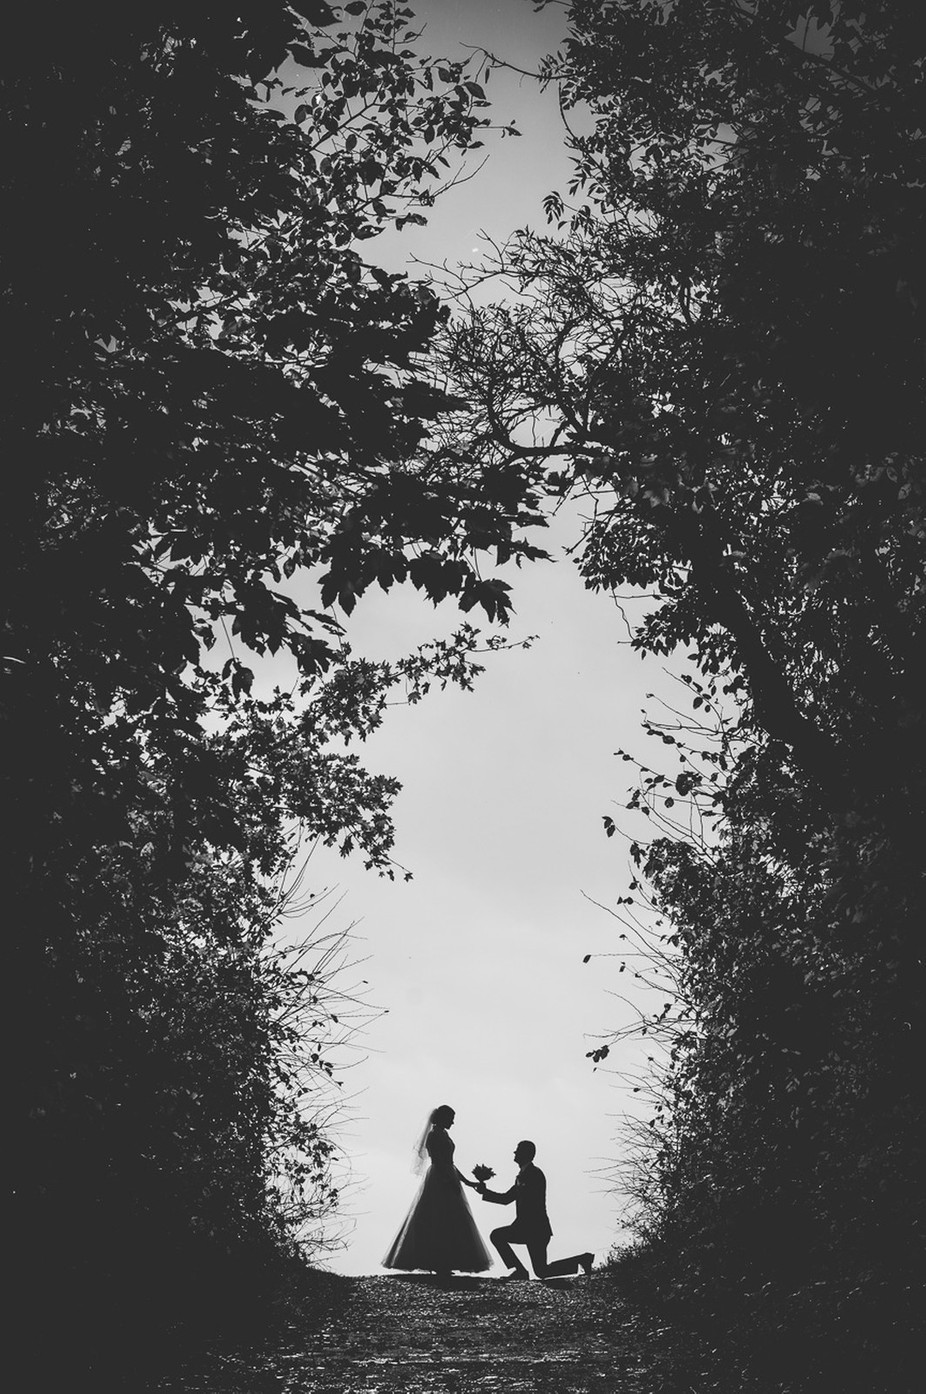 Romance by ErikSvec - Everything In Black And White Photo Contest